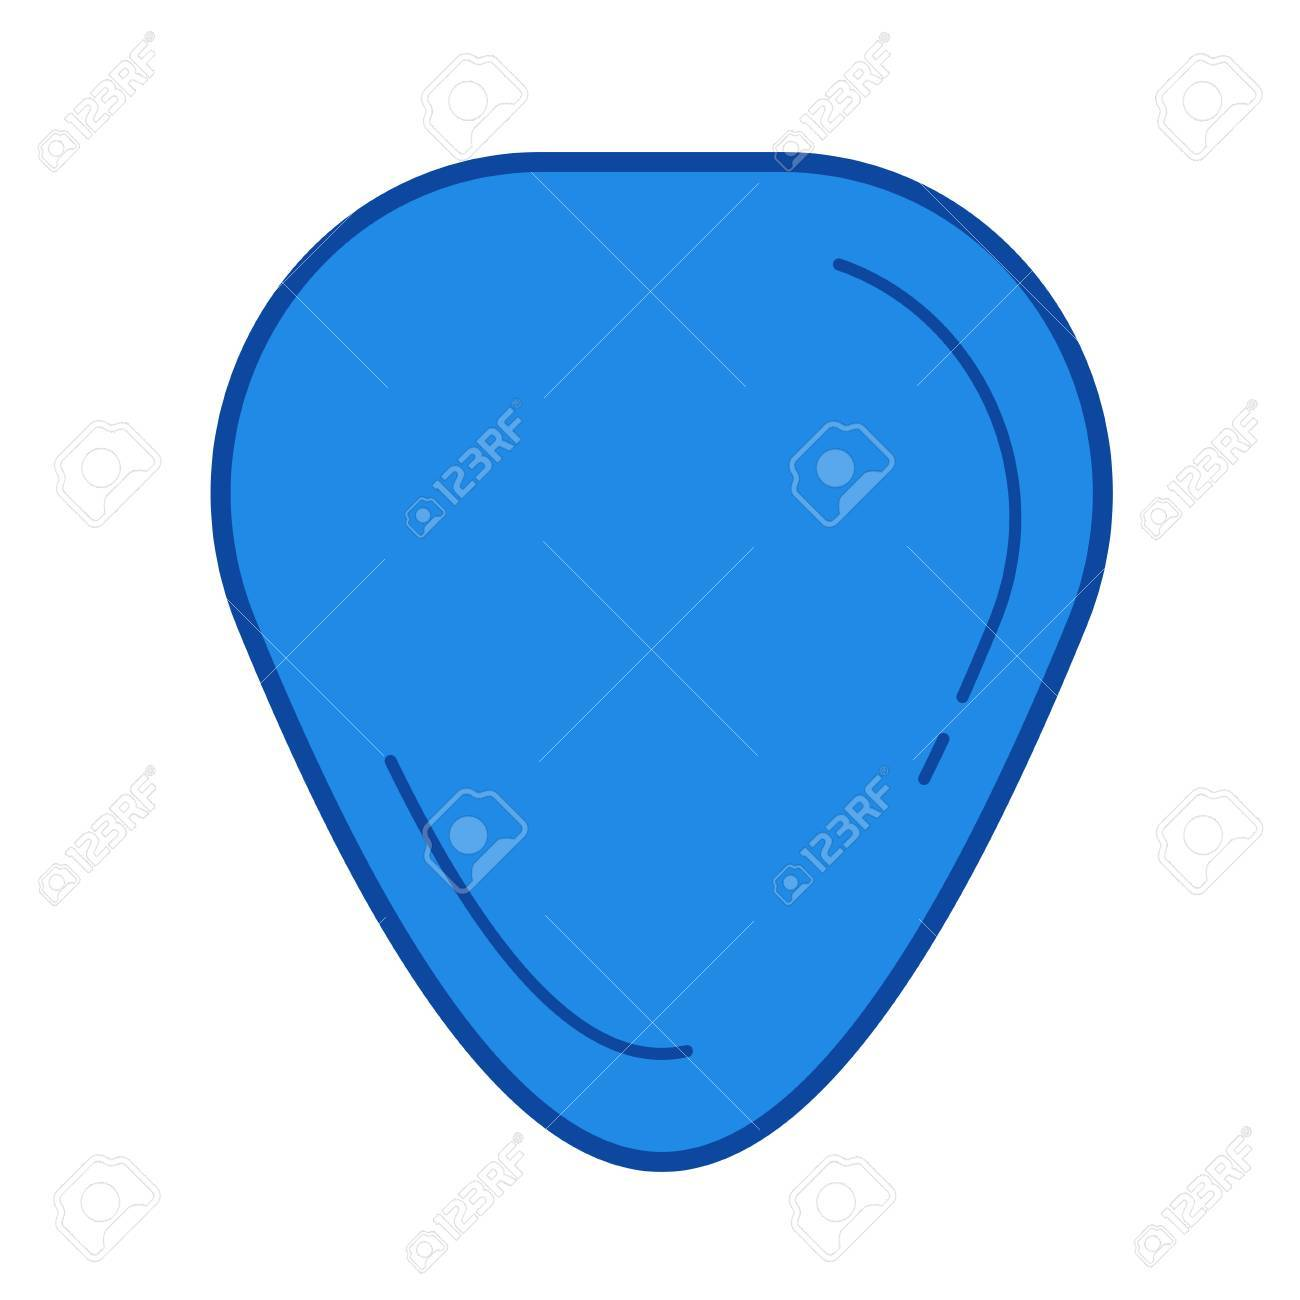 guitar pick vector line icon isolated on white background guitar rh 123rf com guitar pick vector art guitar pick vector free download